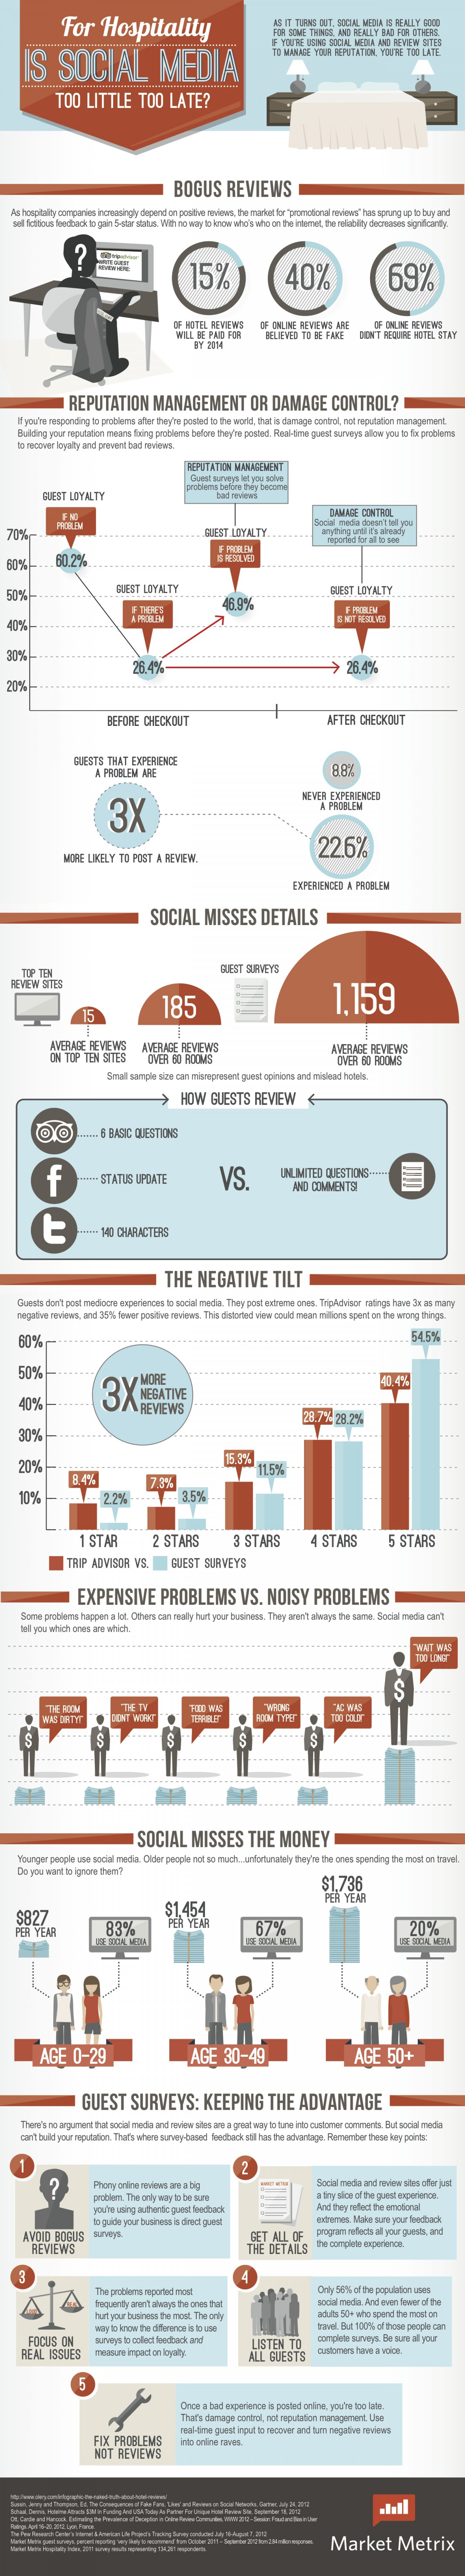 For Hospitality: Is Social Media Too Little Too Late? Infographic